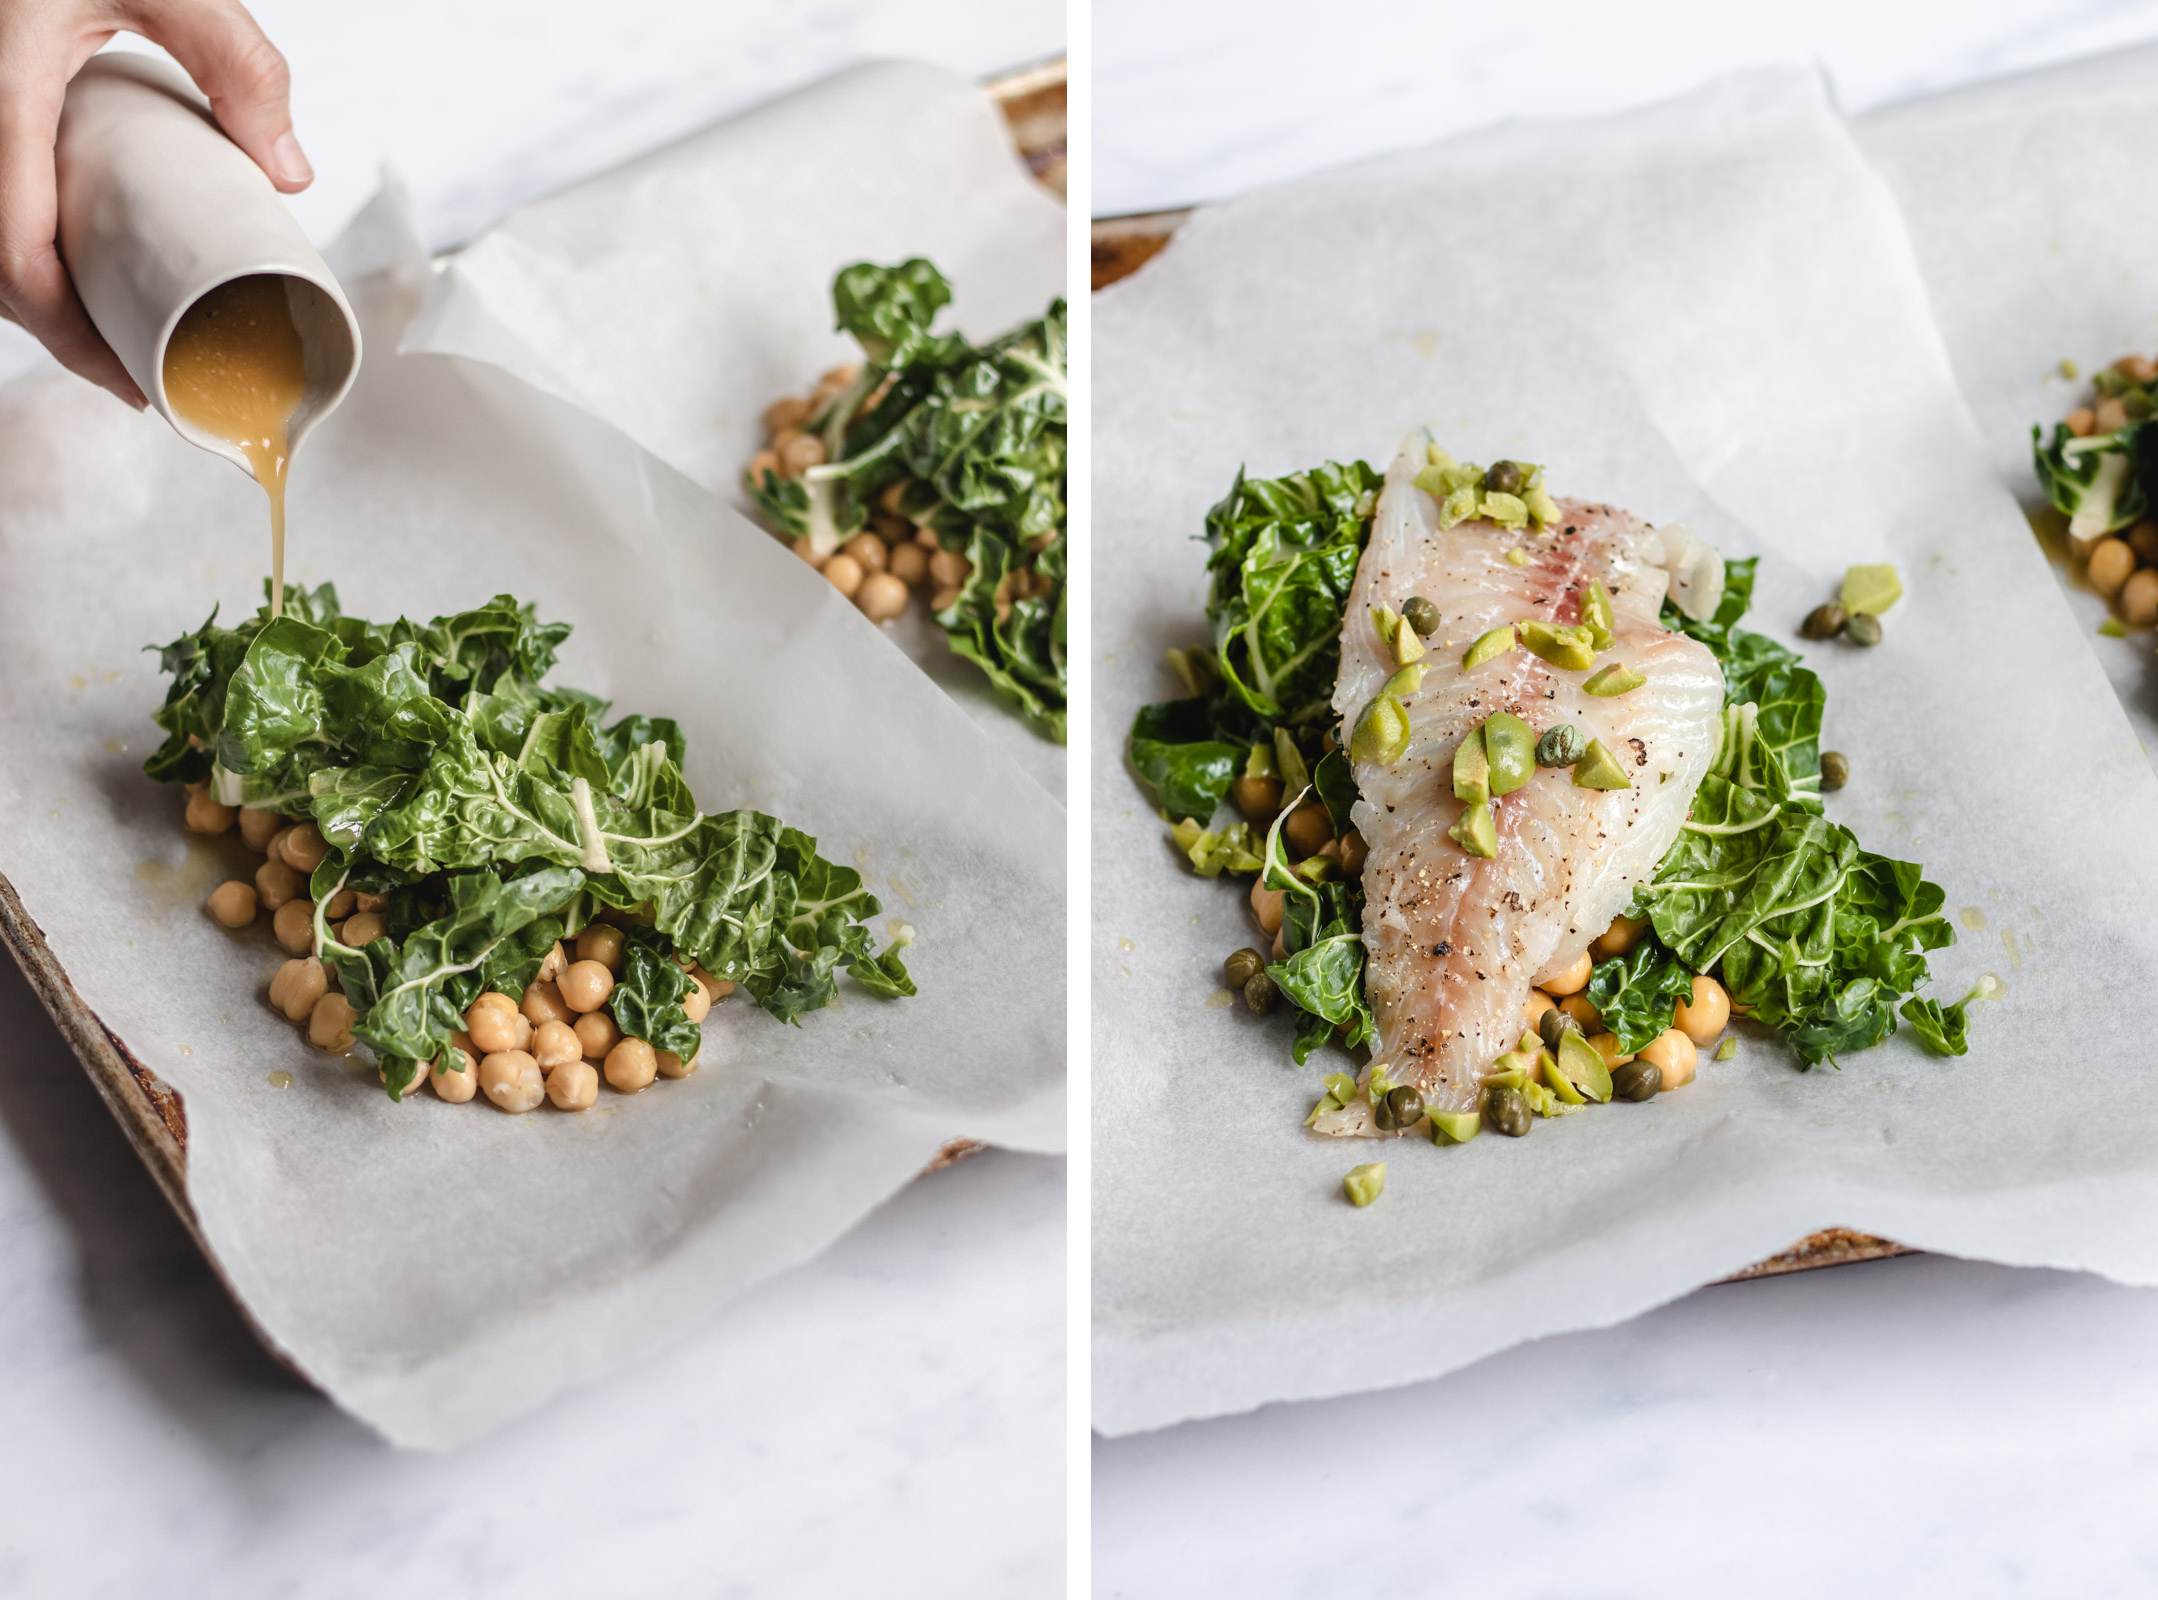 a split image. on the left chickpeas and greens with sauce being poured on them. on the right, a piece of fish laying on the bed of greens and chick peas.